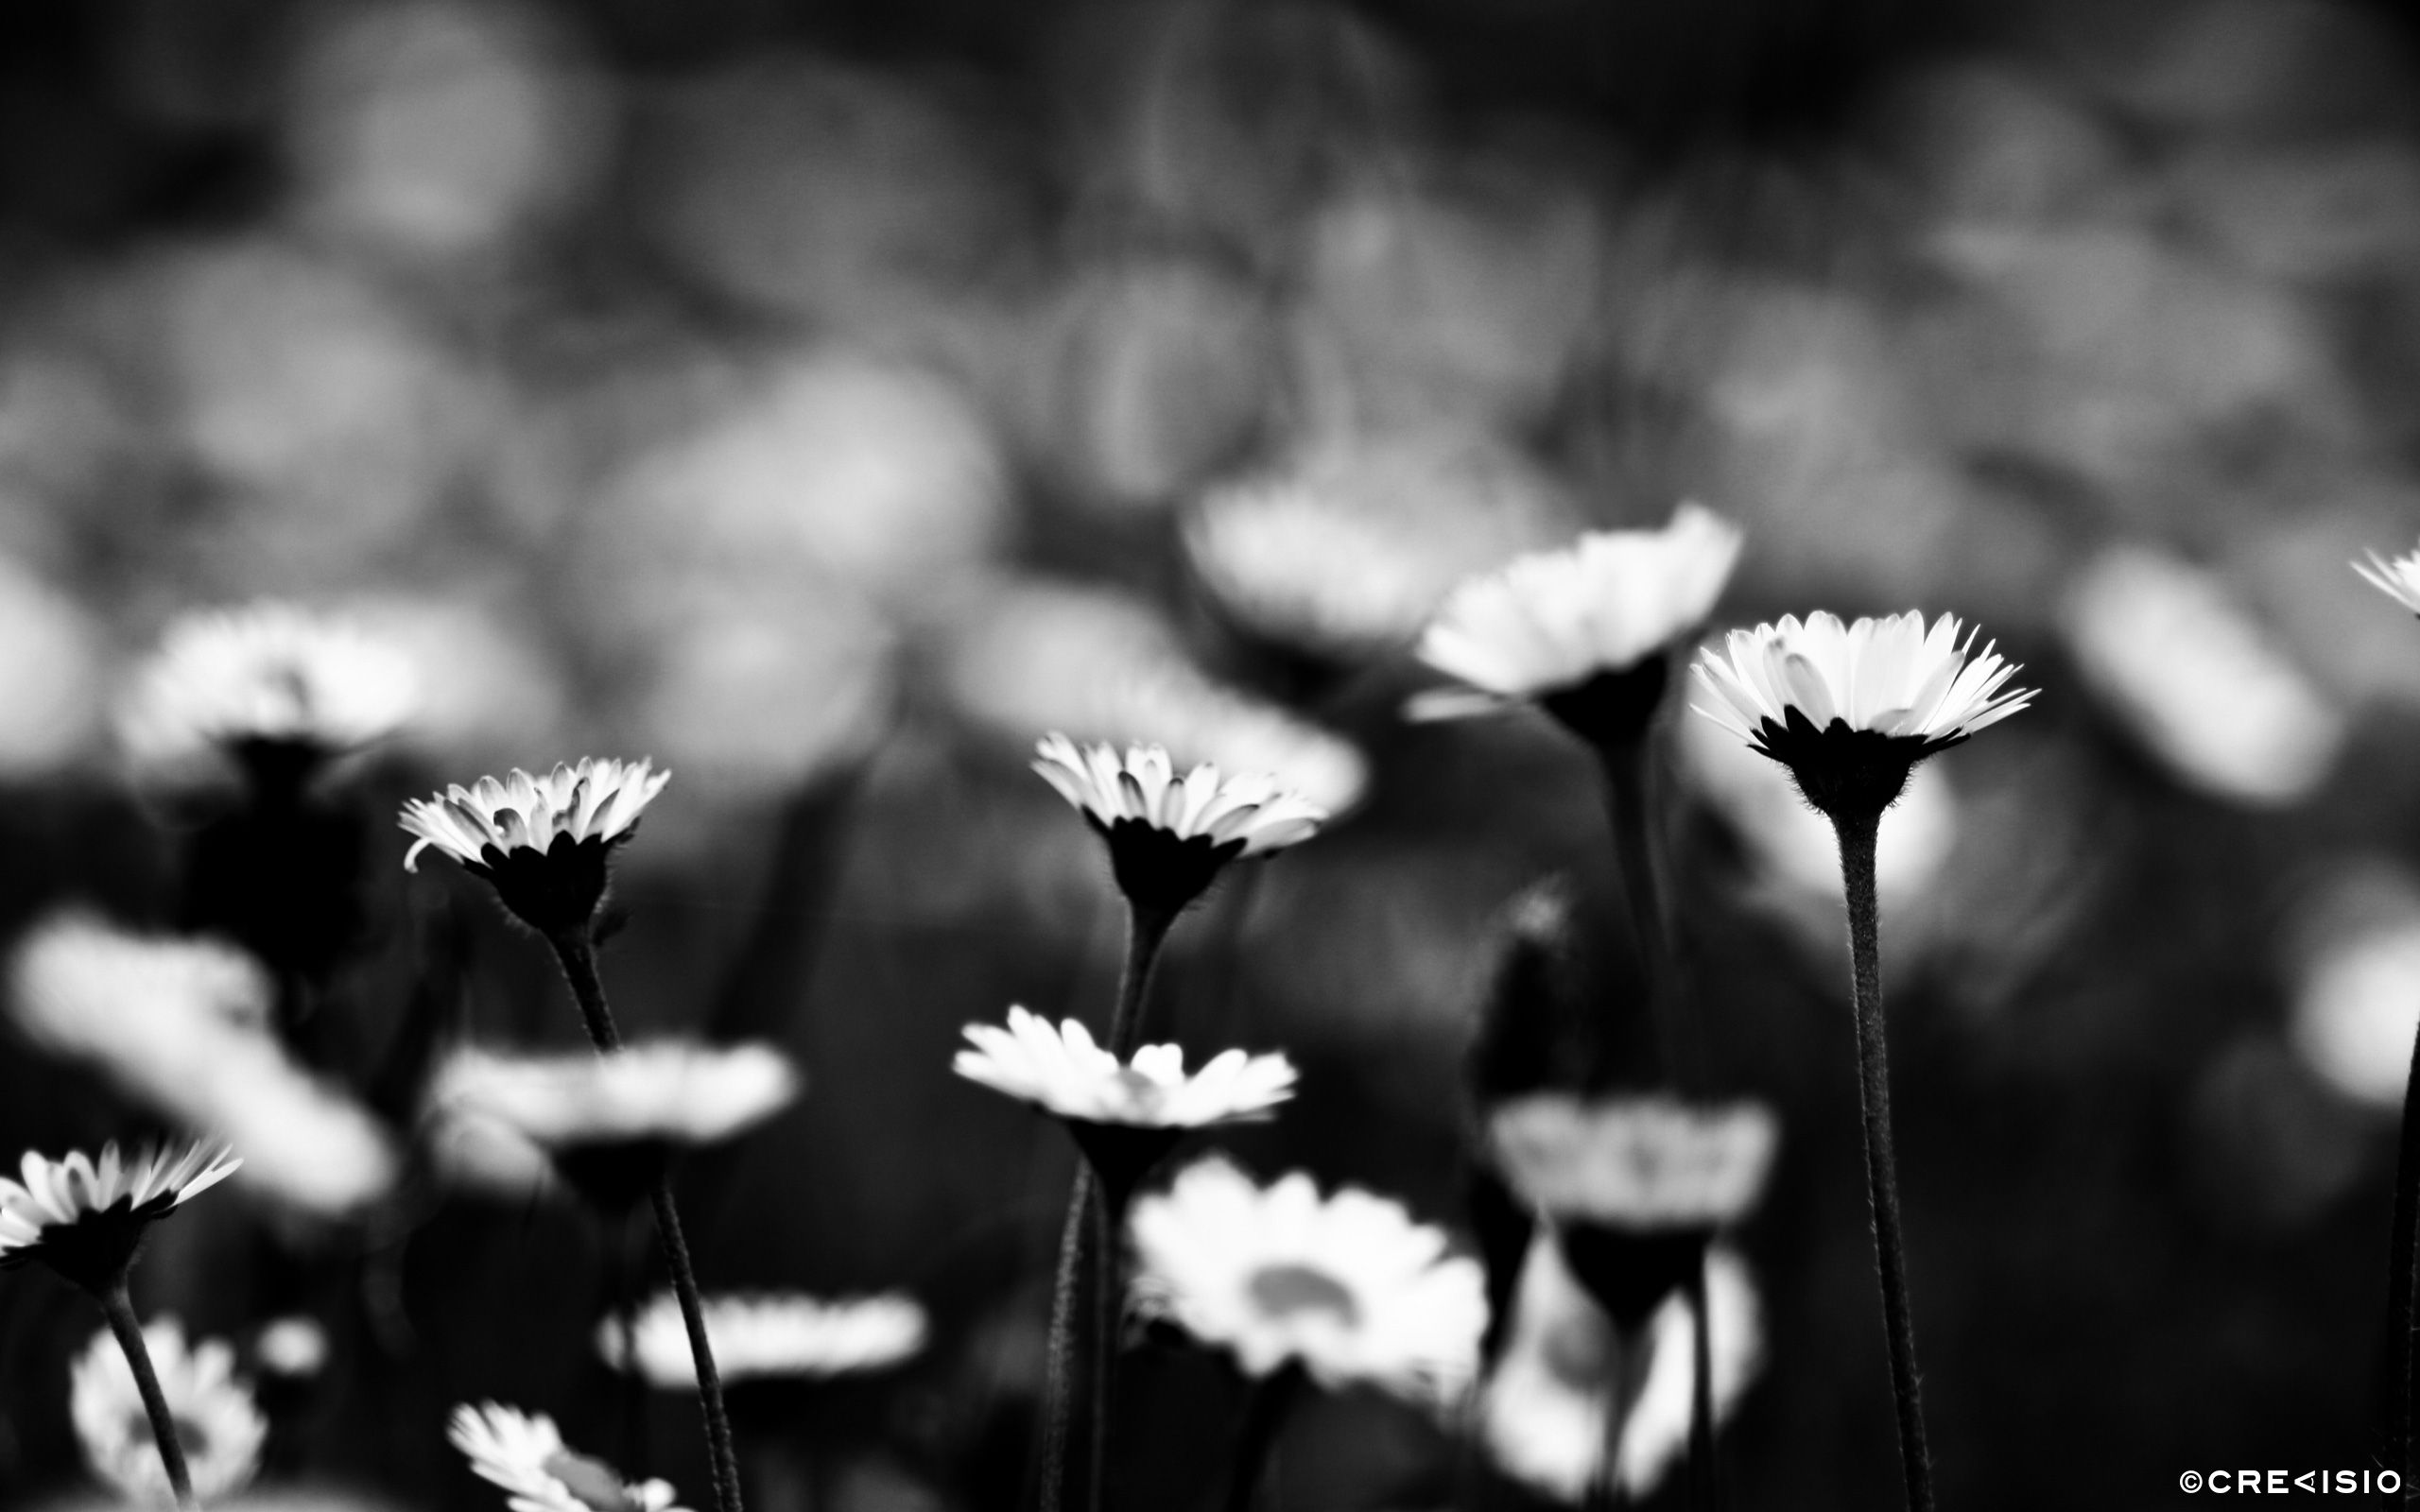 White and Black photography of daisies photos